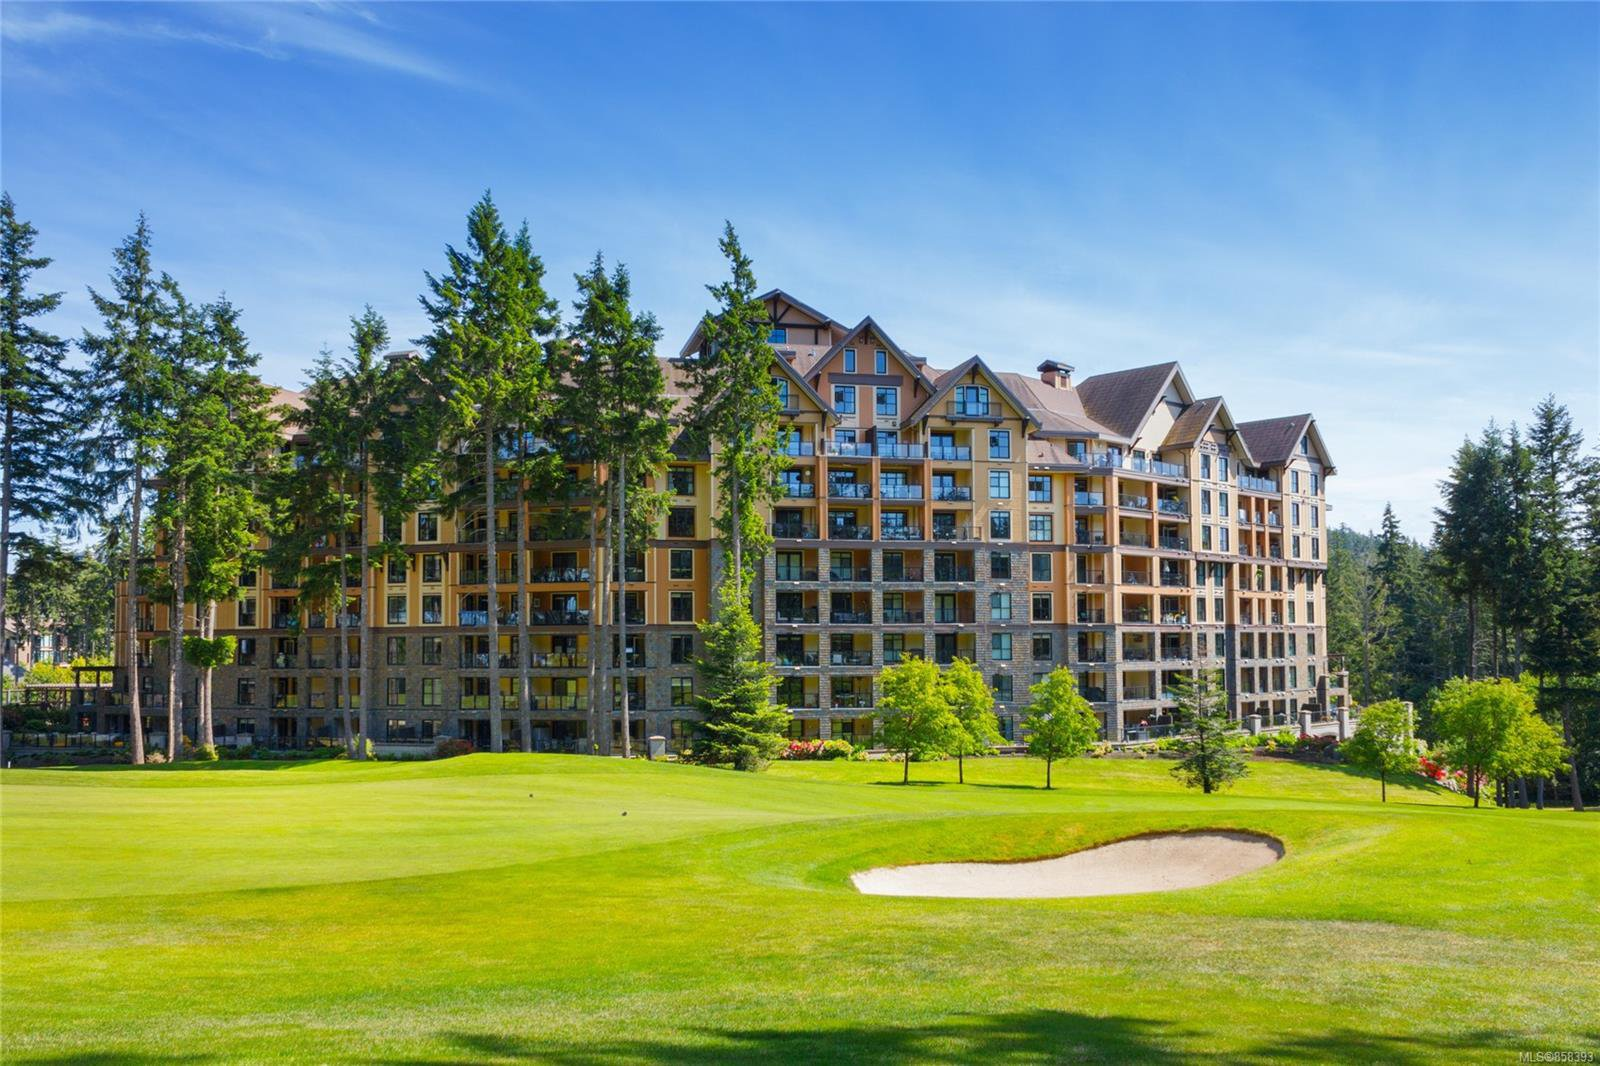 Main Photo: 214 1400 Lynburne St in : La Bear Mountain Condo for sale (Langford)  : MLS®# 858393